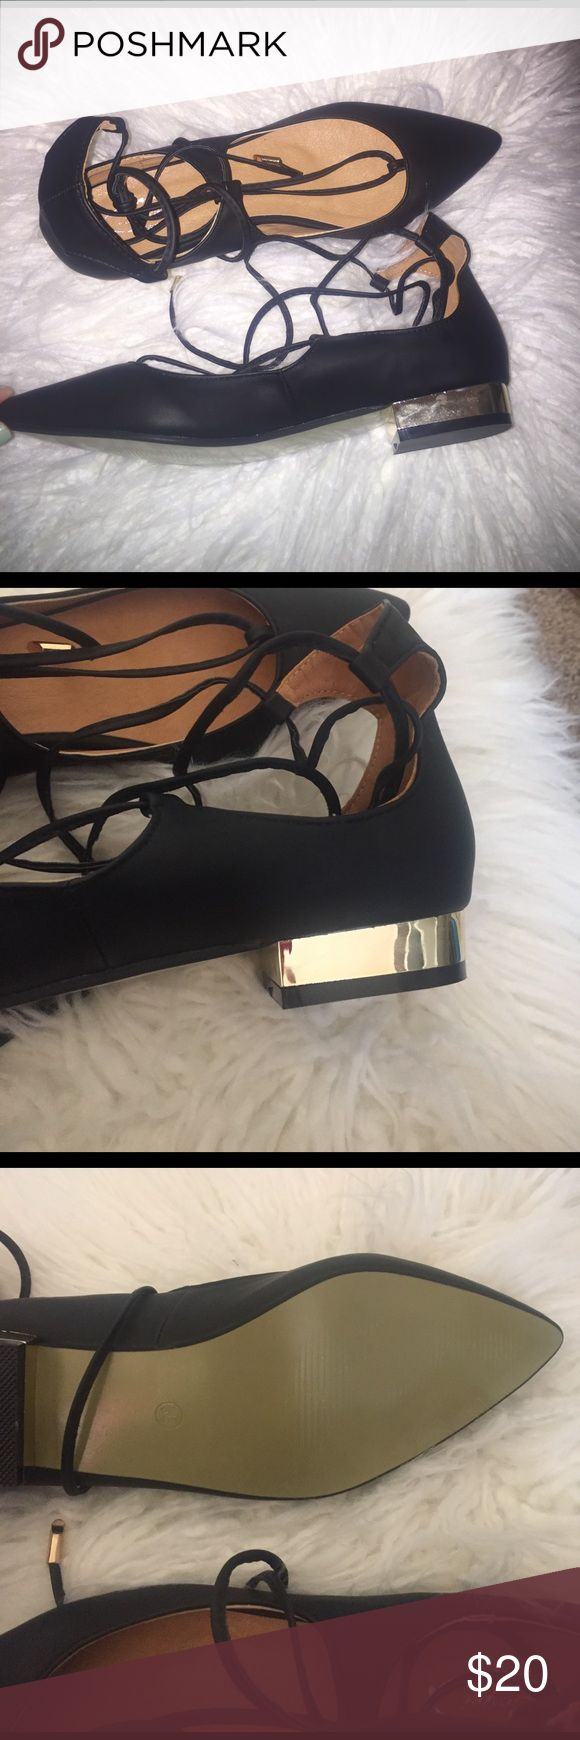 Blogger style pointed ballet flat Very cute pointed ballet flat. These lace up and have a shiny gold bottom. Never worn. Leyei Shoes Flats & Loafers